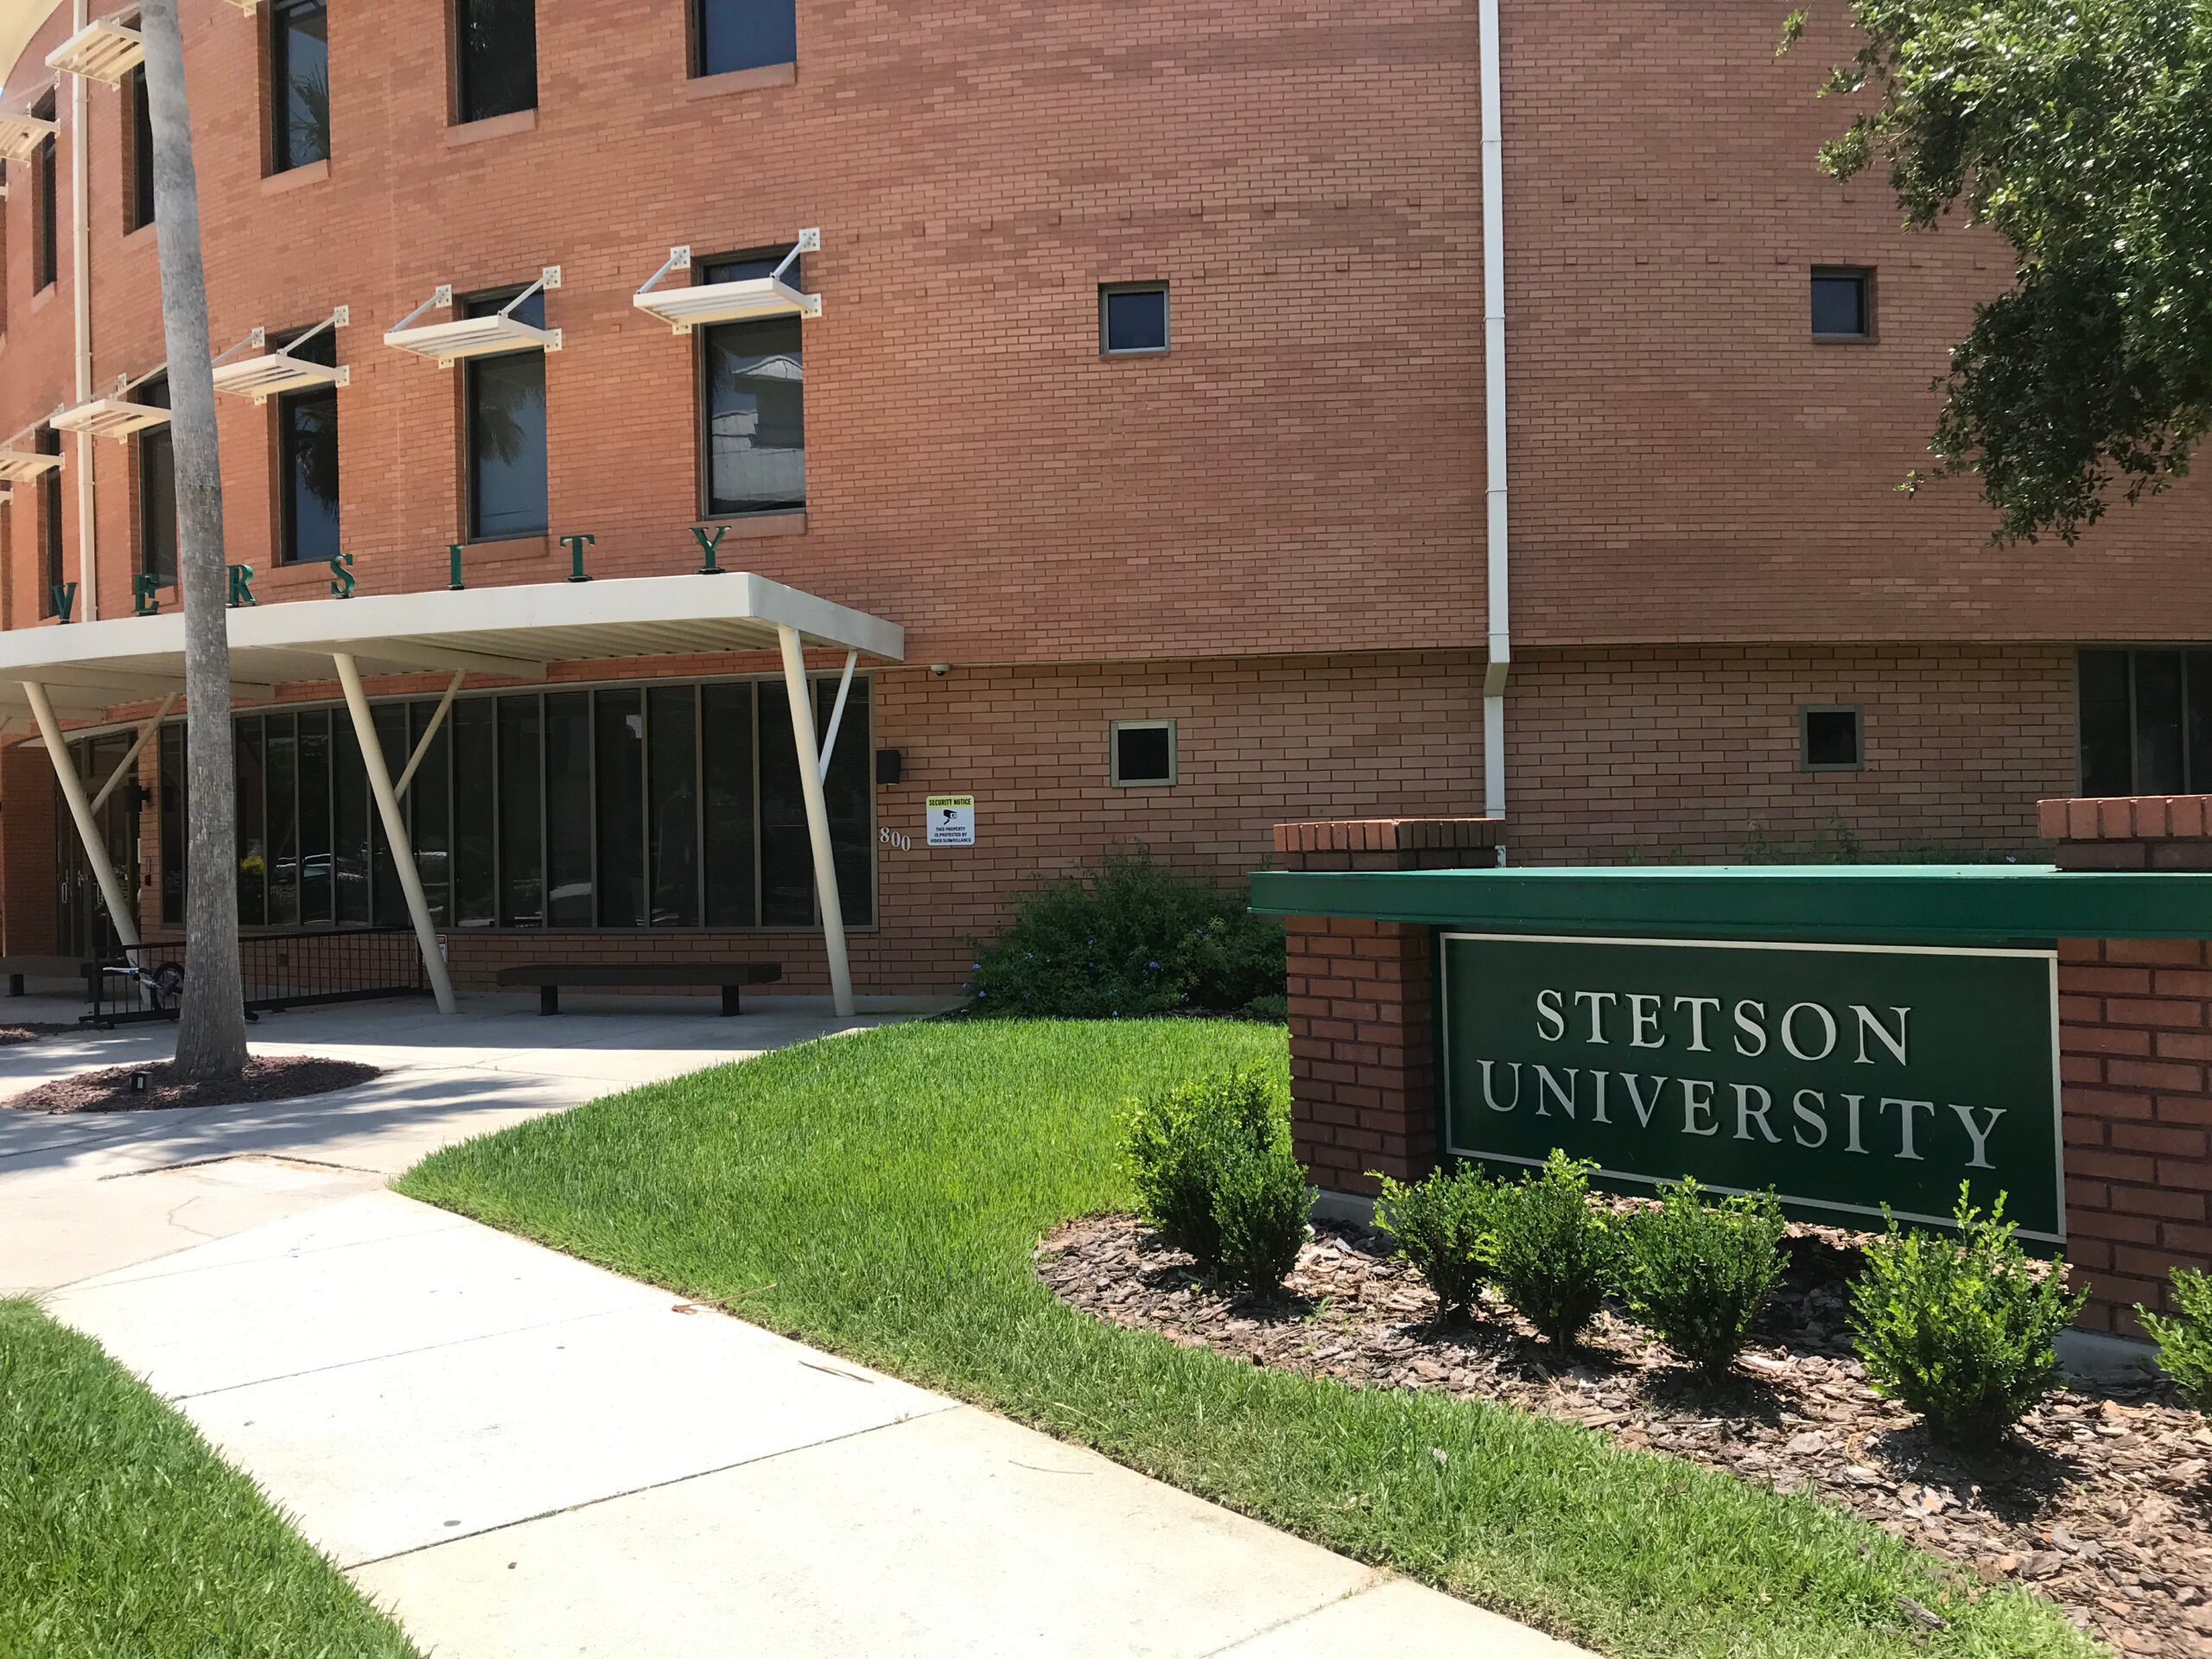 Stetson University is helping ensure students feel safe on campus thanks to a $296,000, three-year grant from the United States Department of Justice Office on Violence Against Women. Photo credit: Box Lab / Shutterstock.com, licensed.